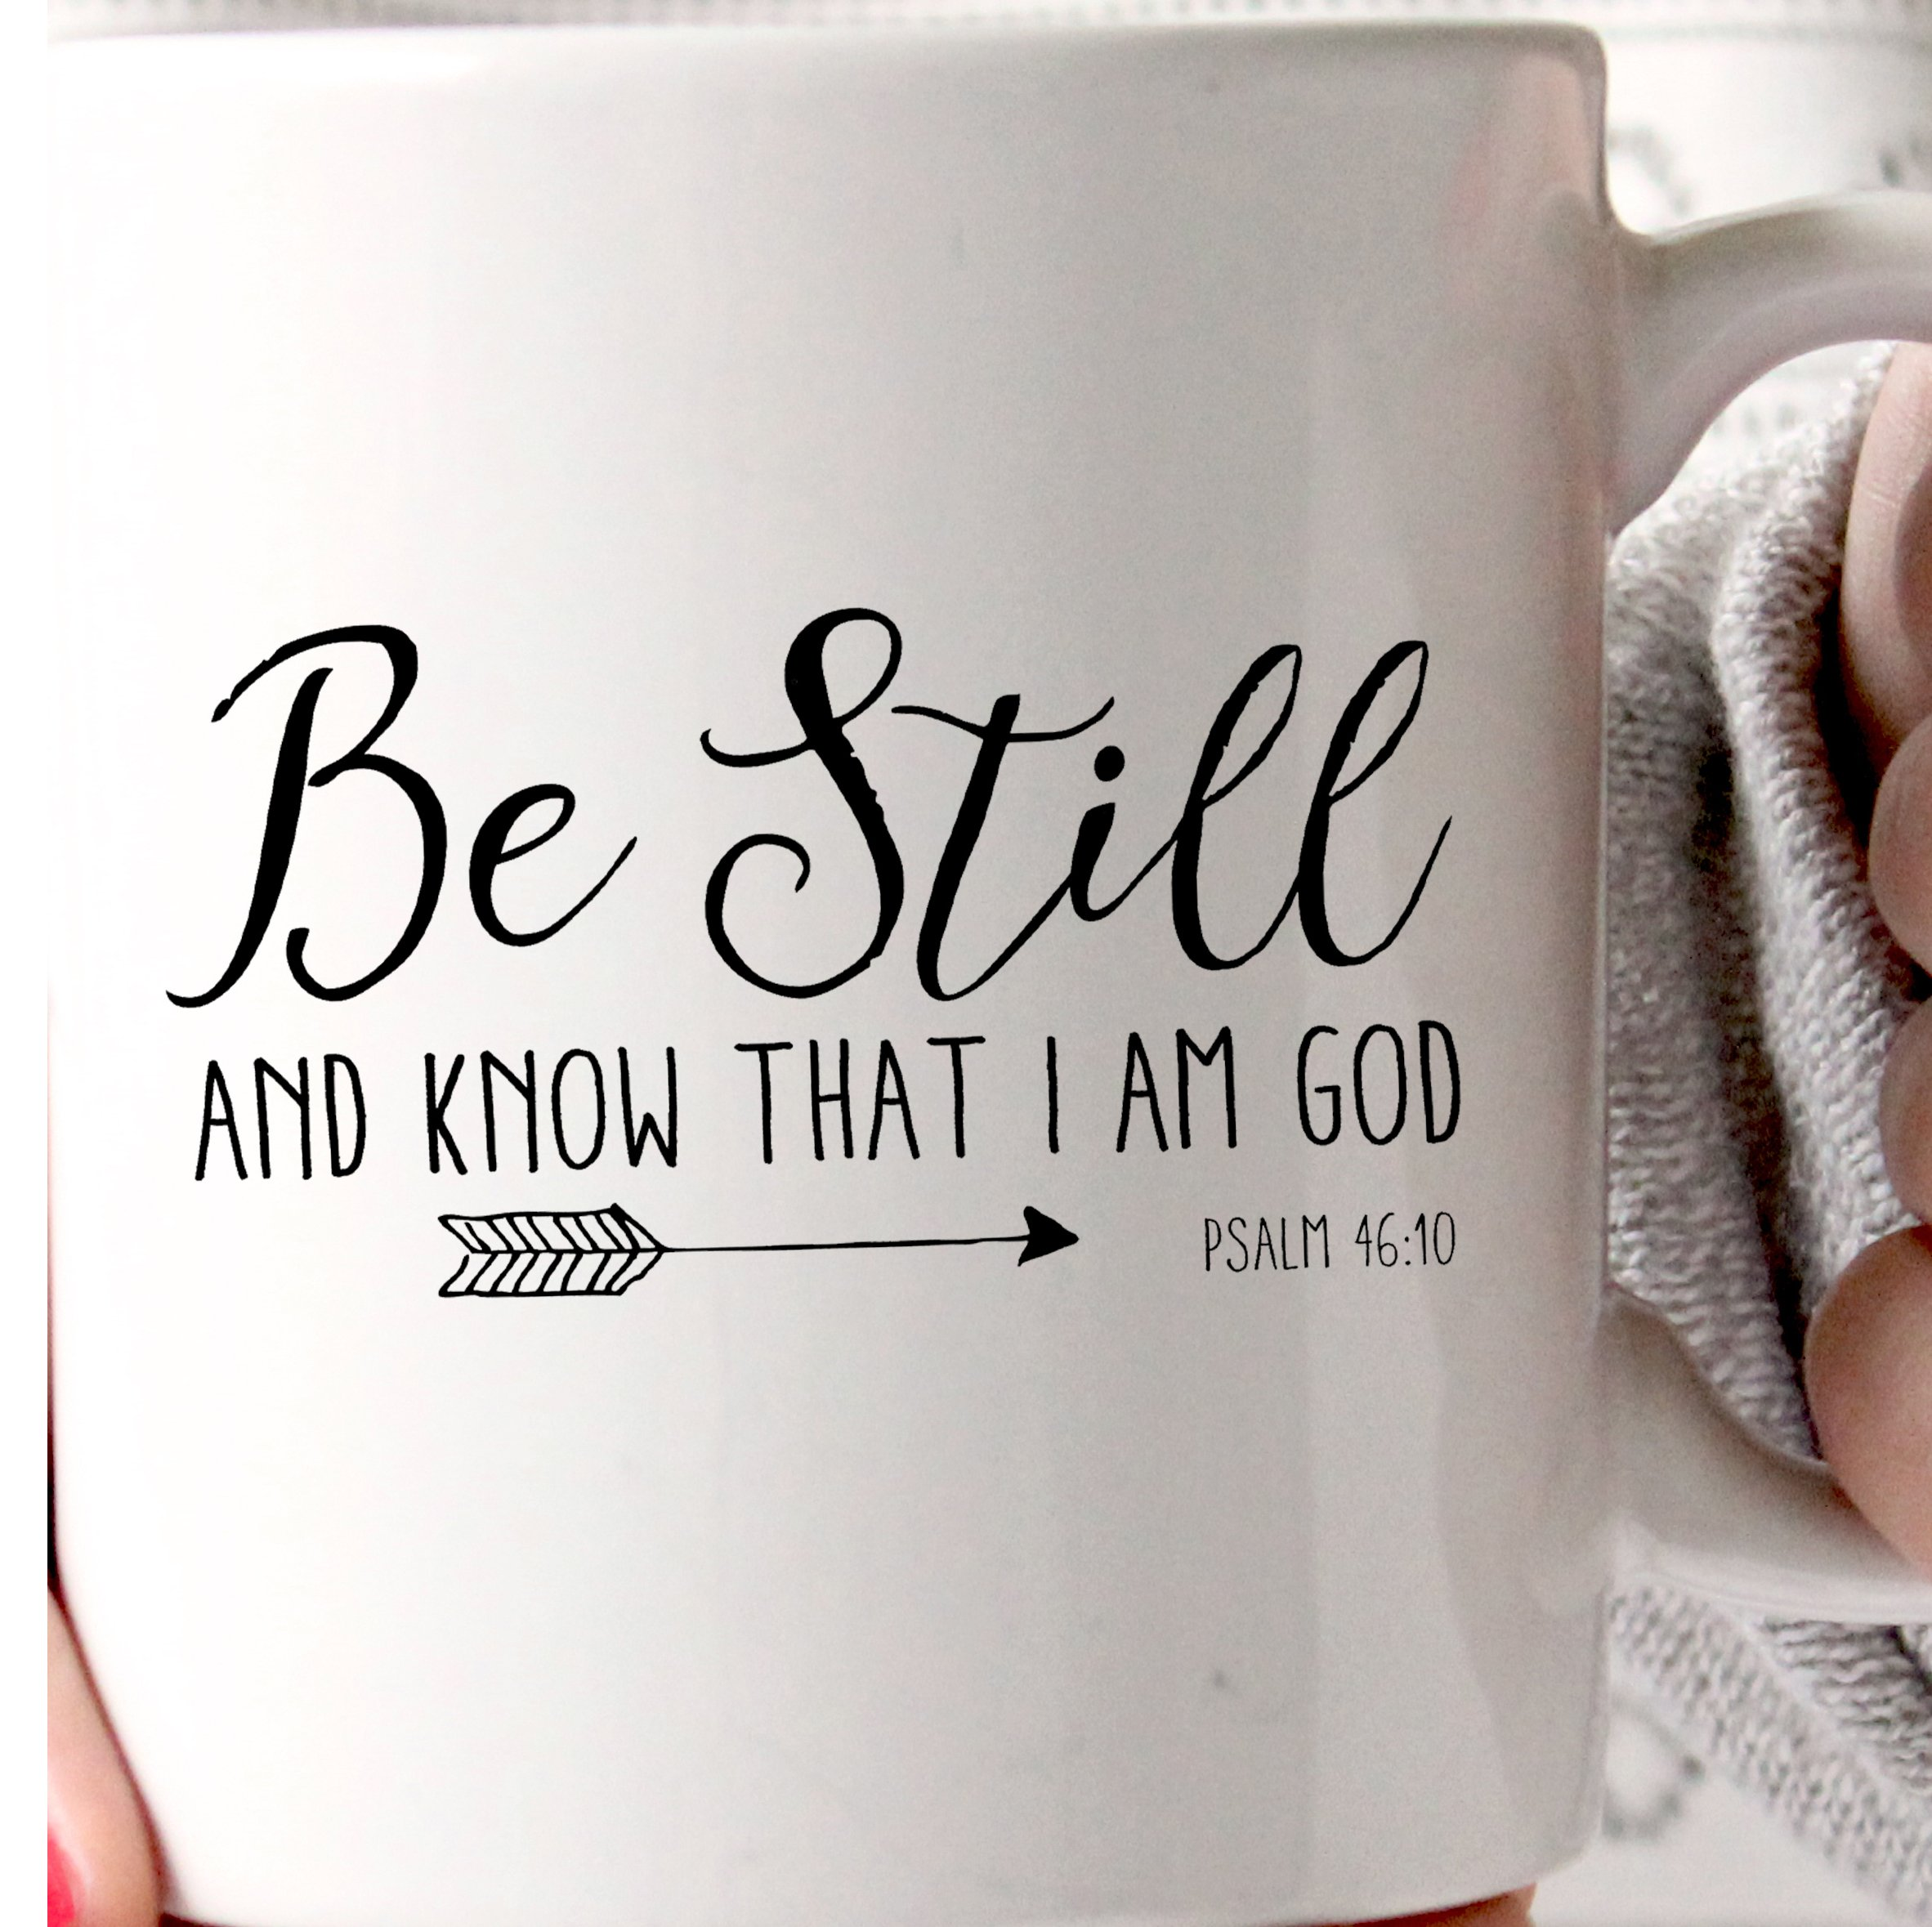 Coffee Mug 11 oz White Novelty Christian Themed - Be Still And Know That I Am God Psalm 46:10 by Farmhouse Originals